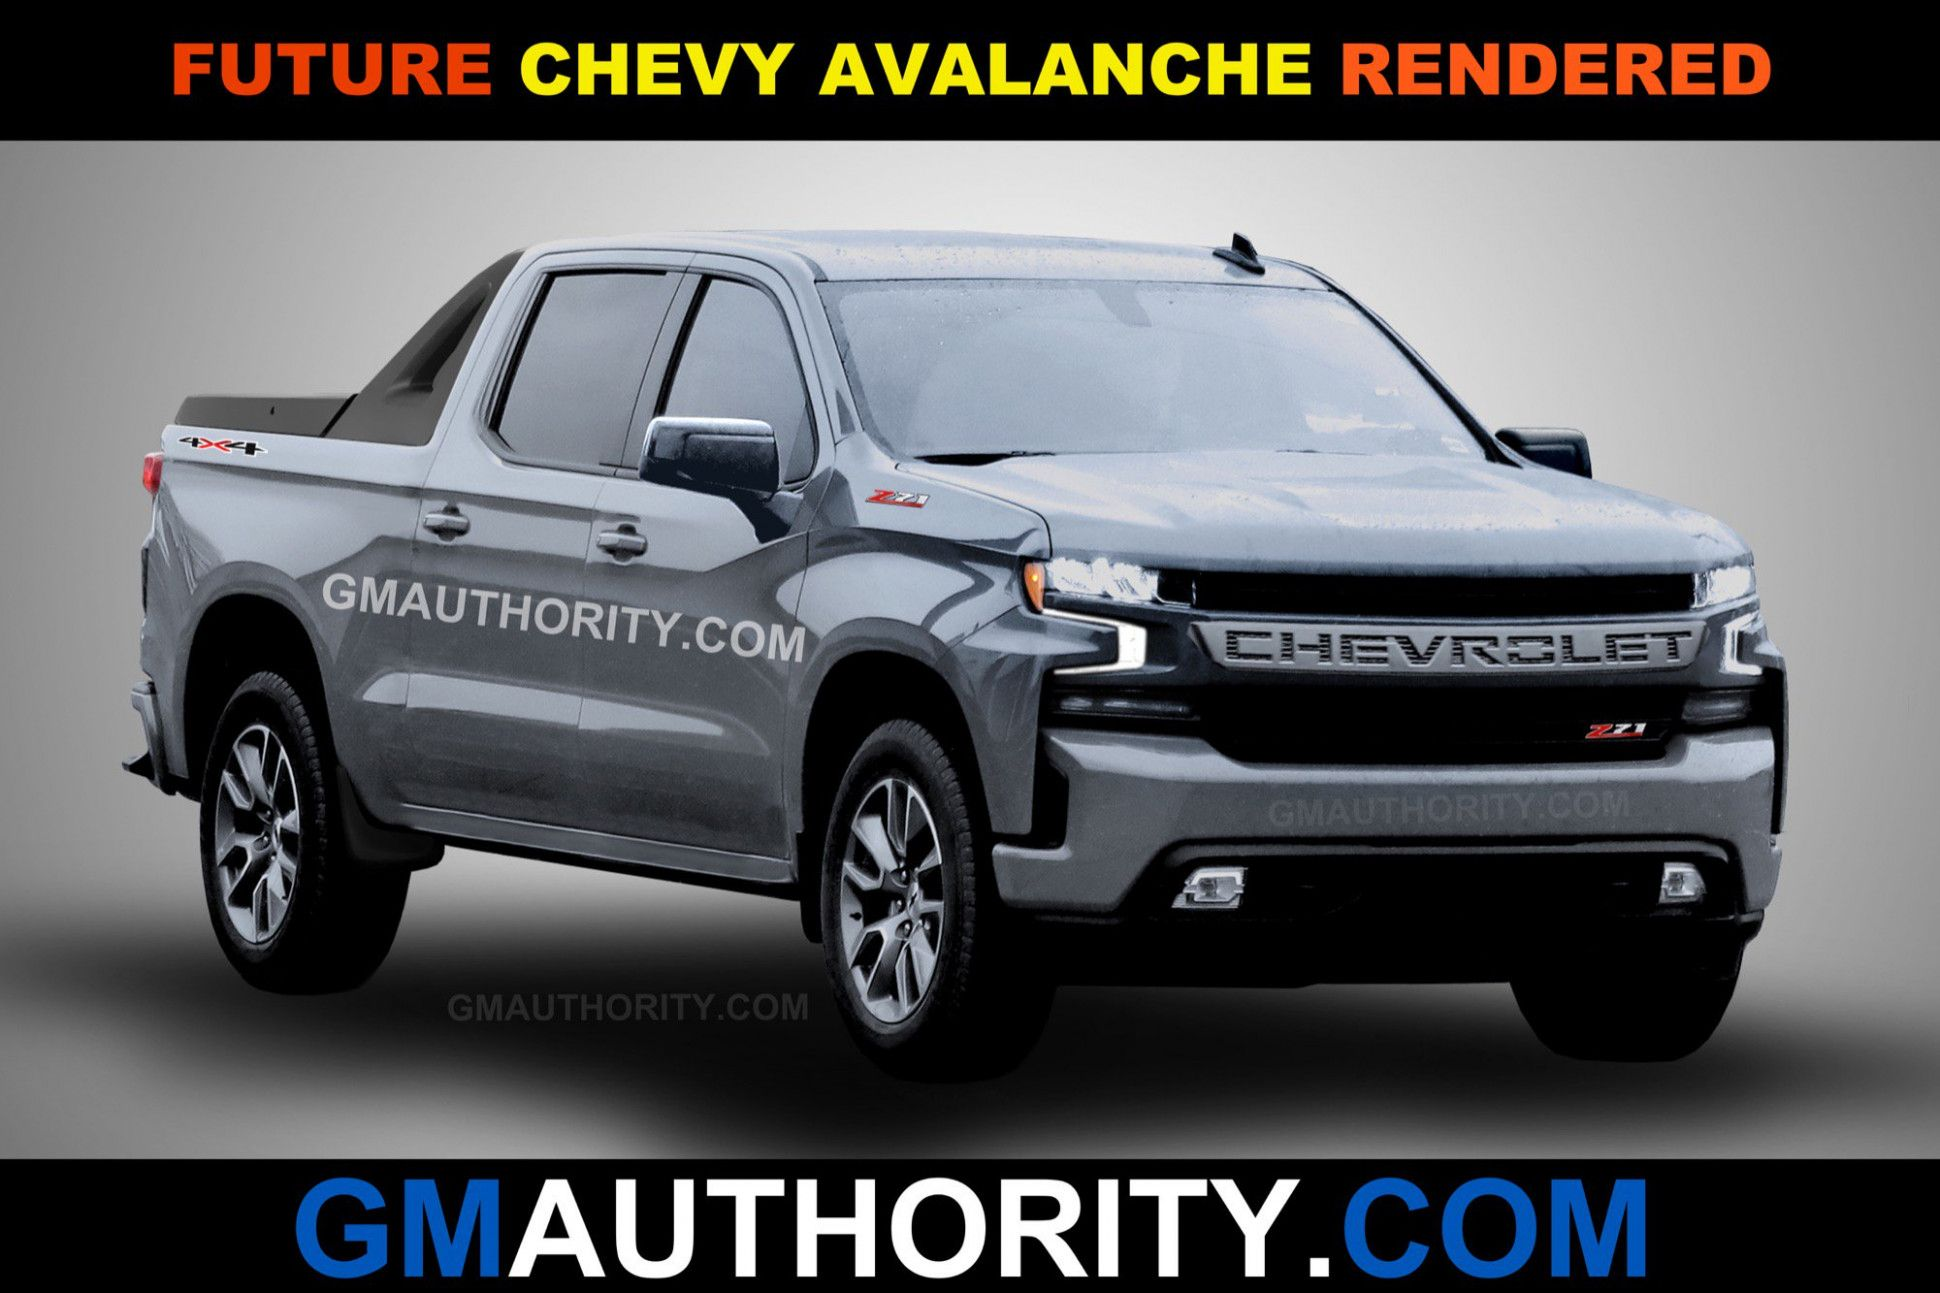 Chevrolet Avalanche 2020 Reviews 2020 Car Reviews